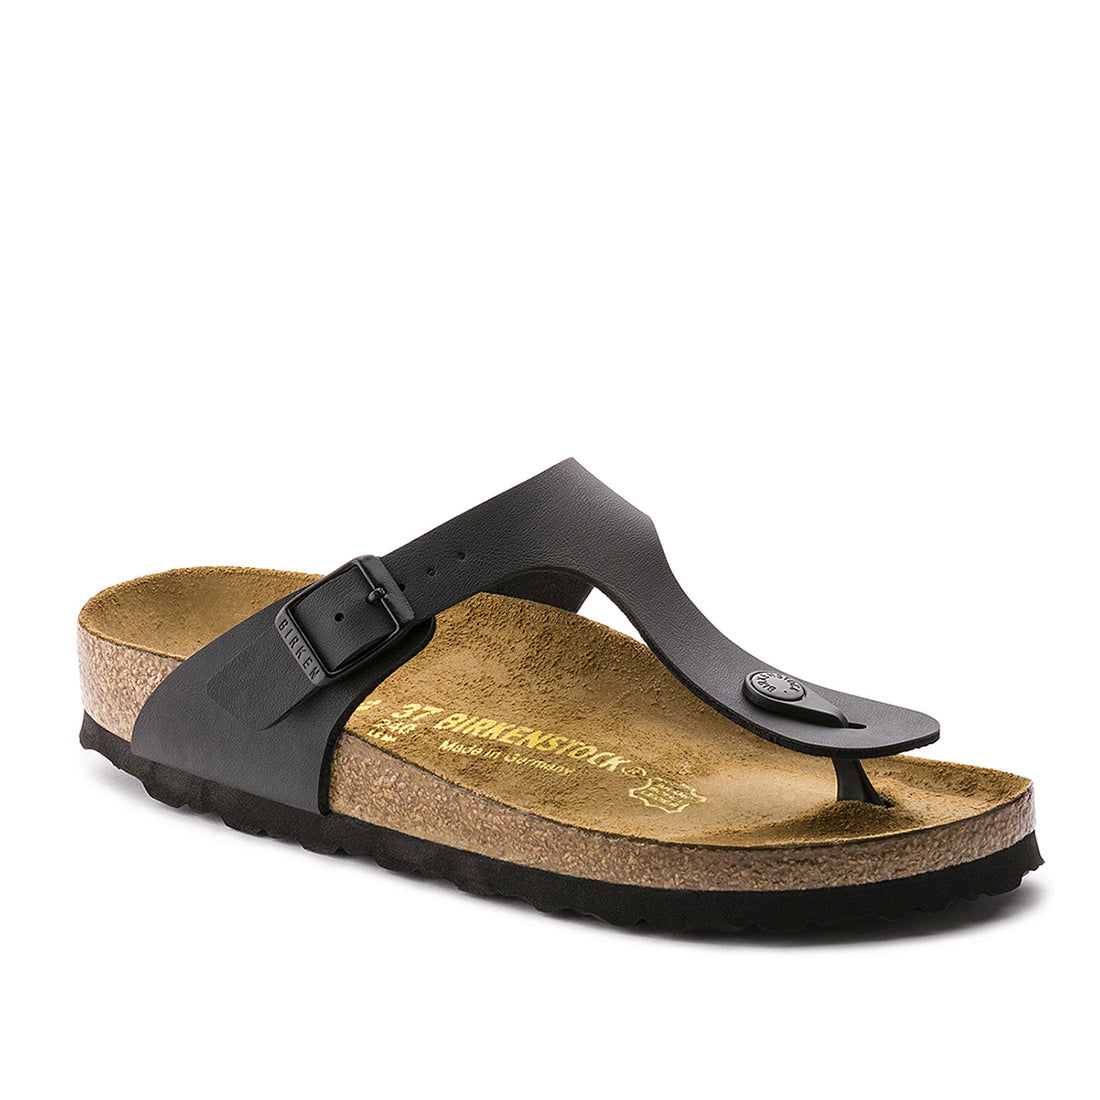 Gizeh Birko Flor (Narrow) - Black - 043693